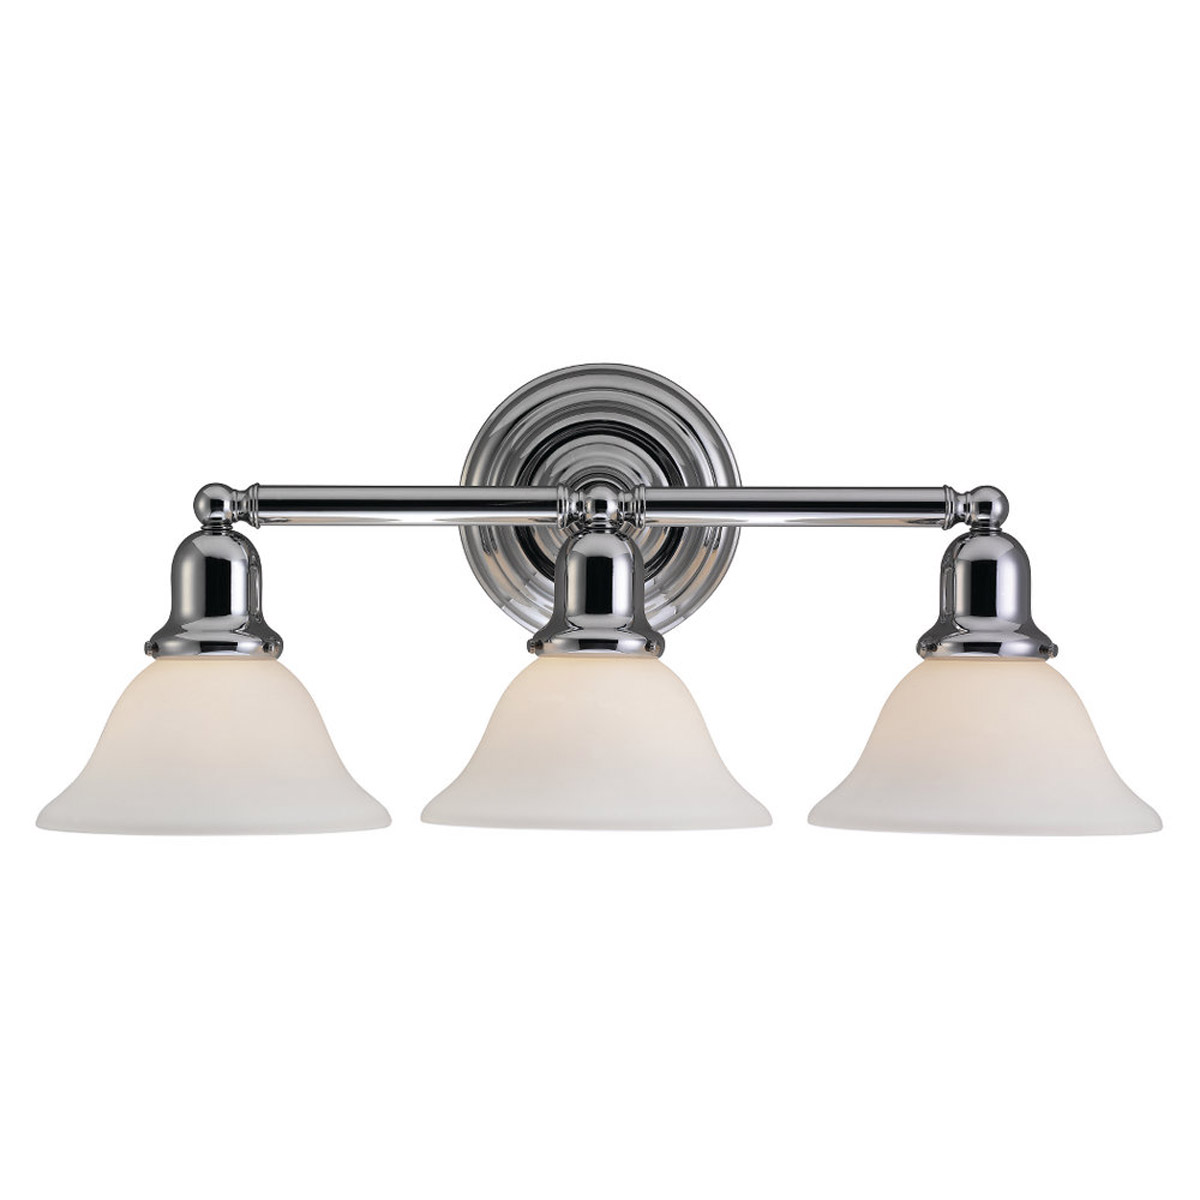 Sea Gull 44062-05 Sussex 3 Light 24 inch Chrome Bath Vanity Wall Light in Satin White Glass photo